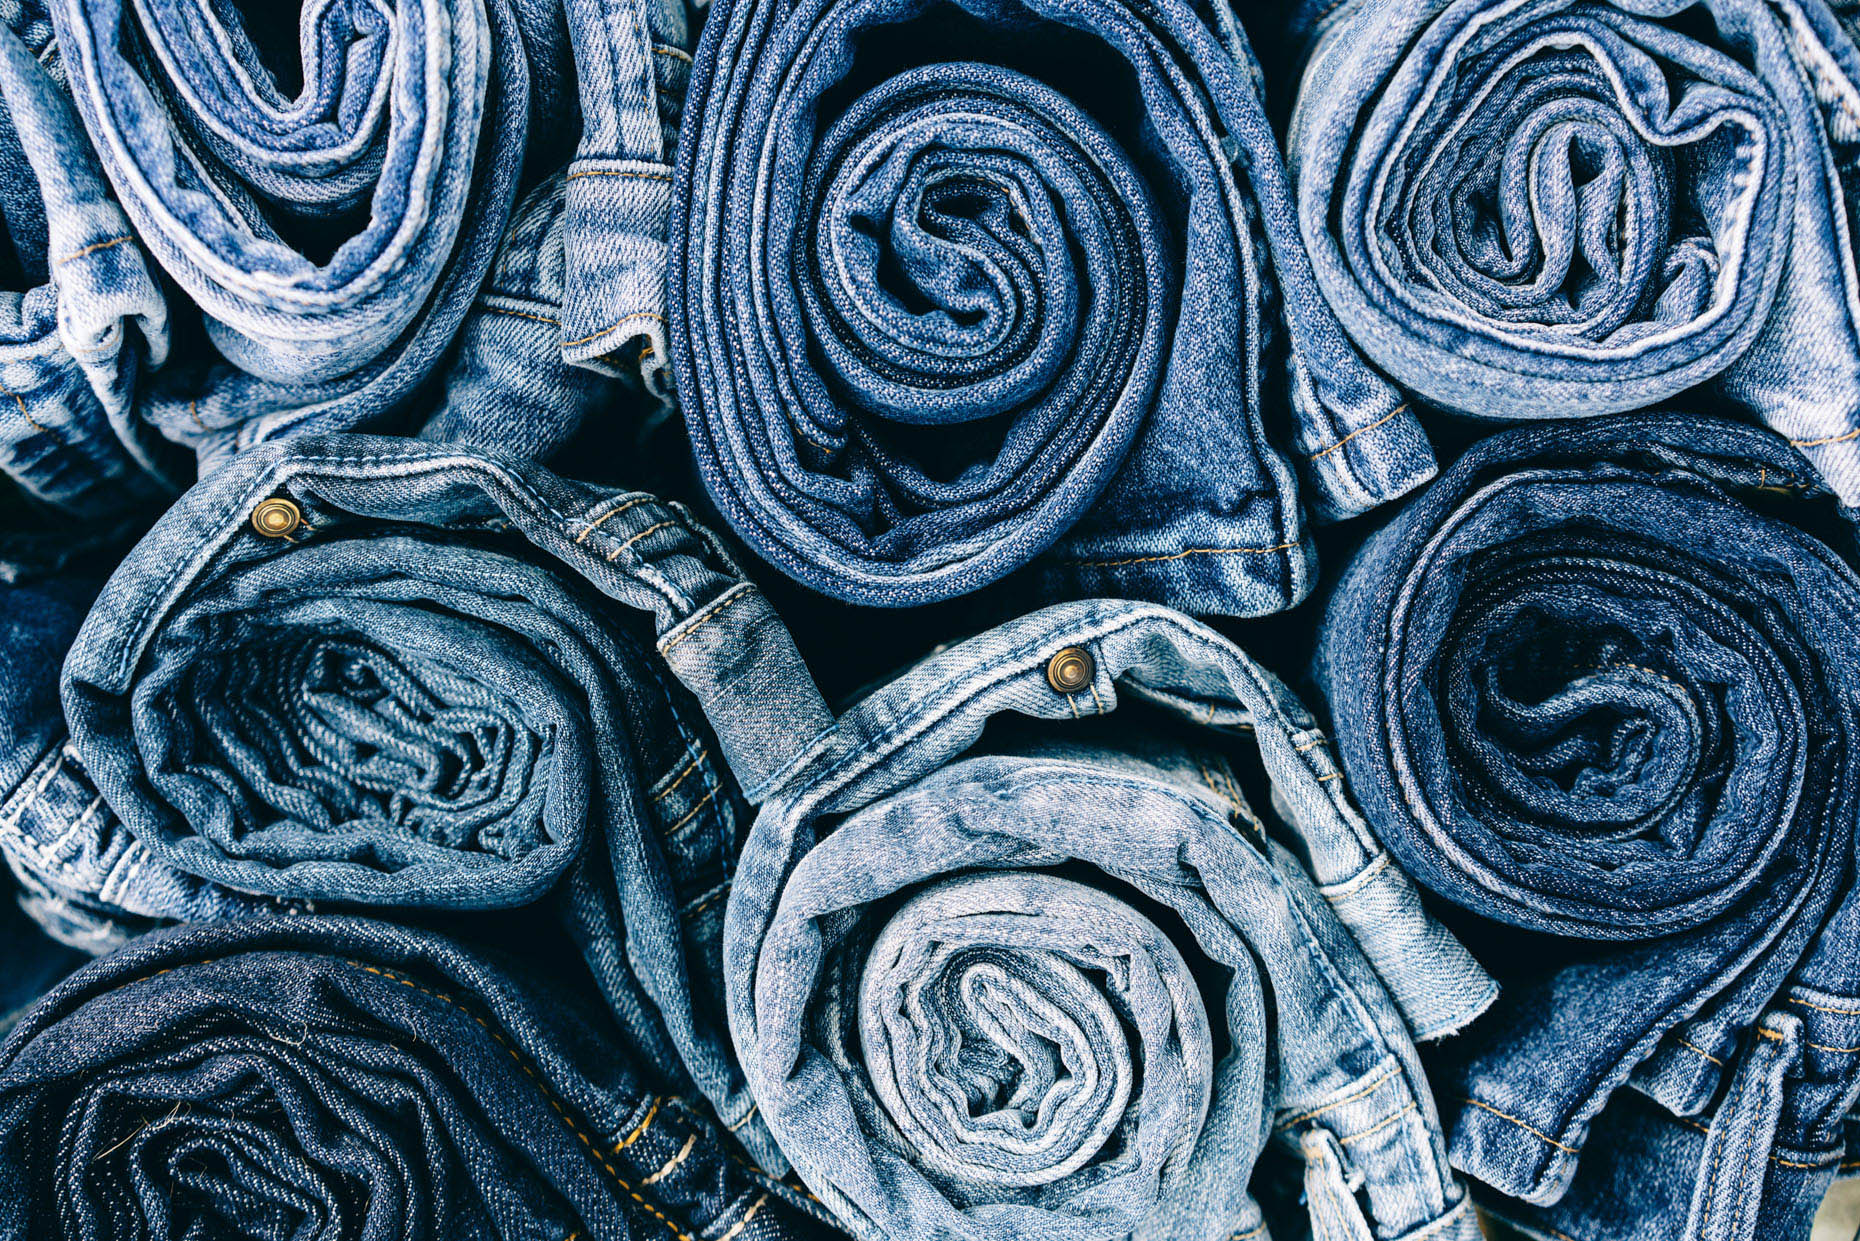 Close up of stack of rolled up Wrangler denim jeans